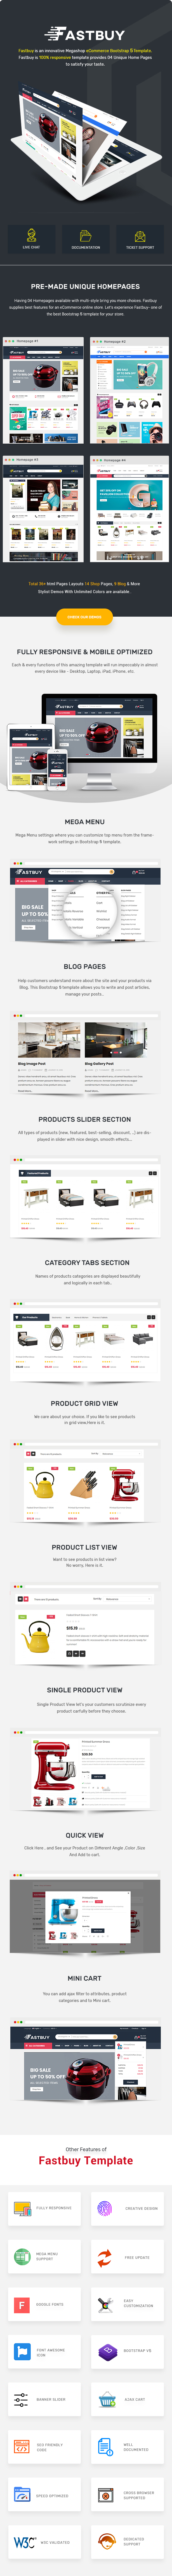 Megashop eCommerce Bootstrap 4 Template